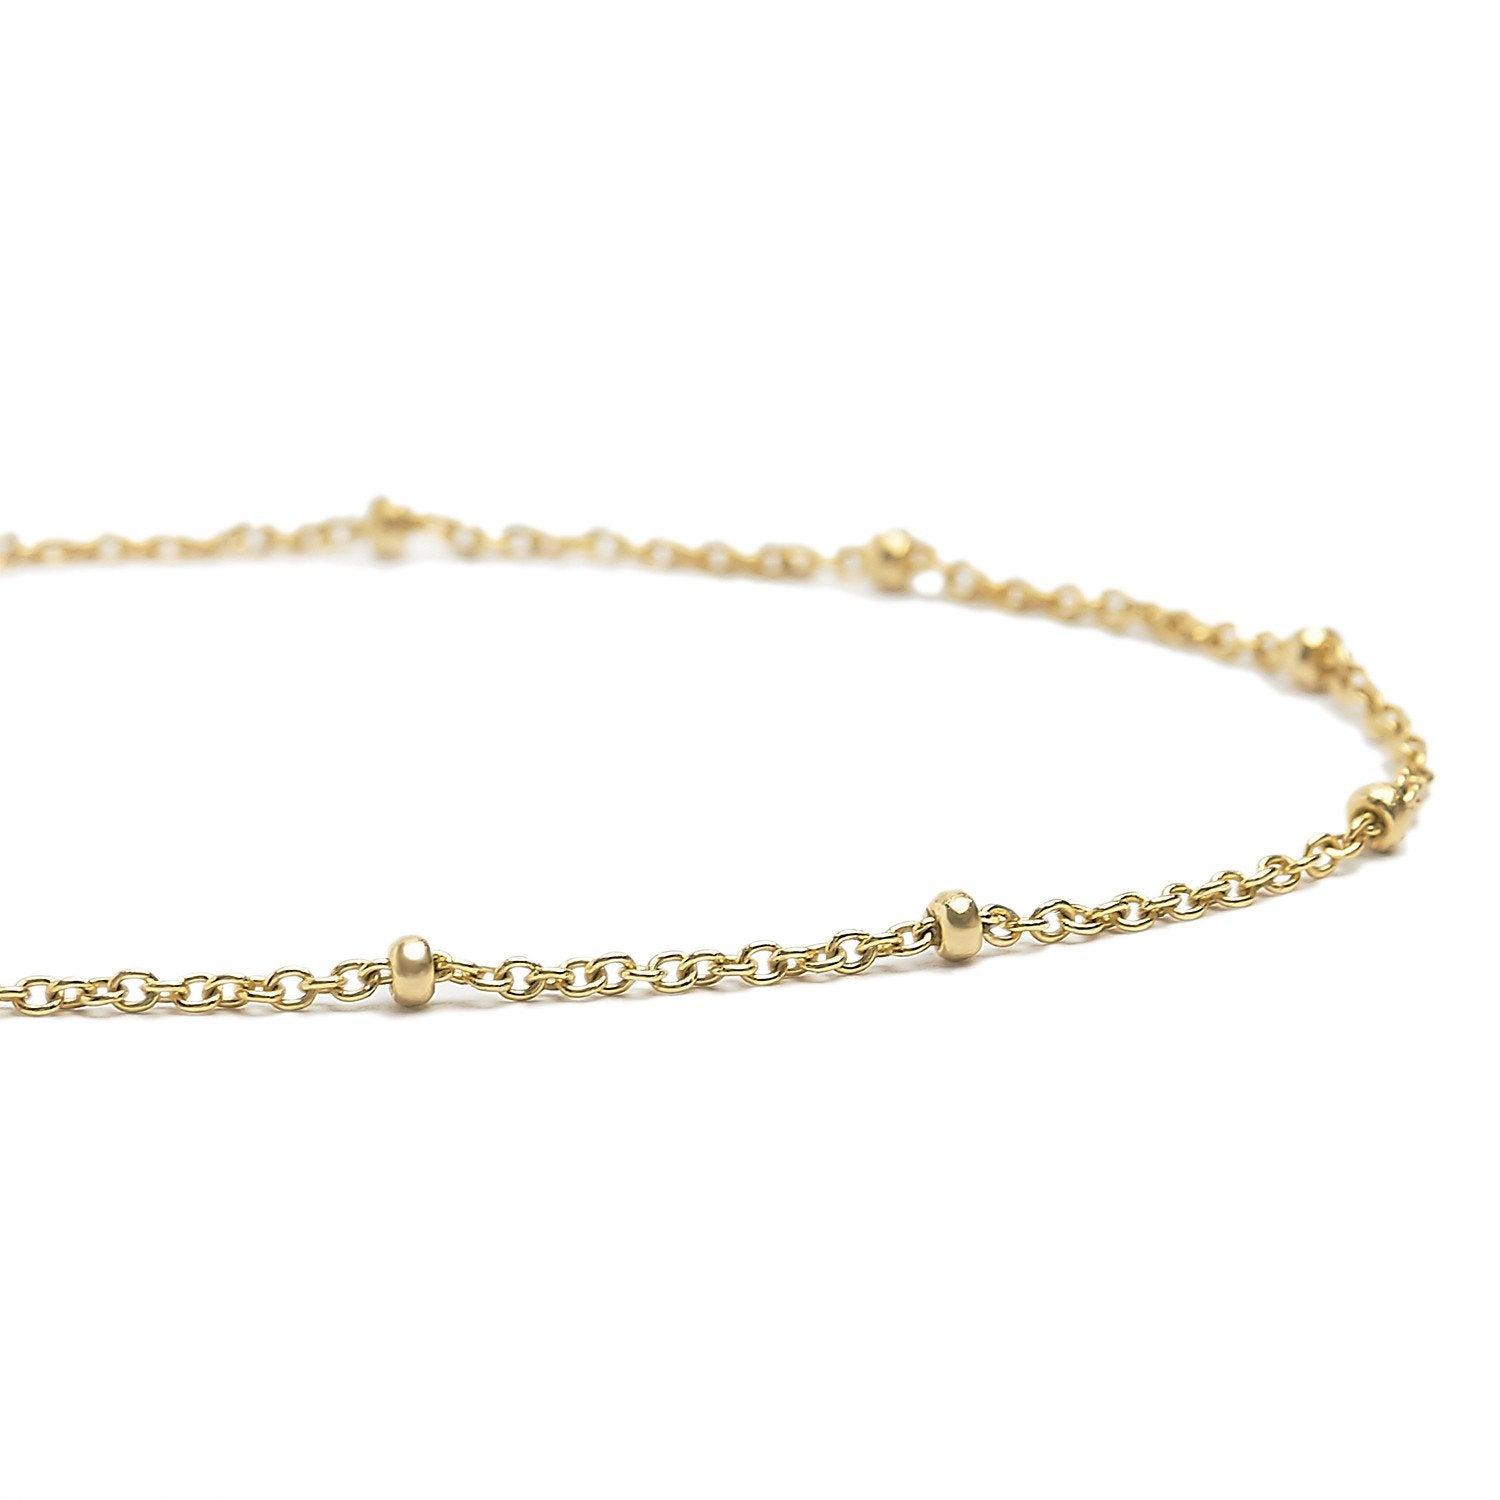 gold product chain goldpriceproject chains man white